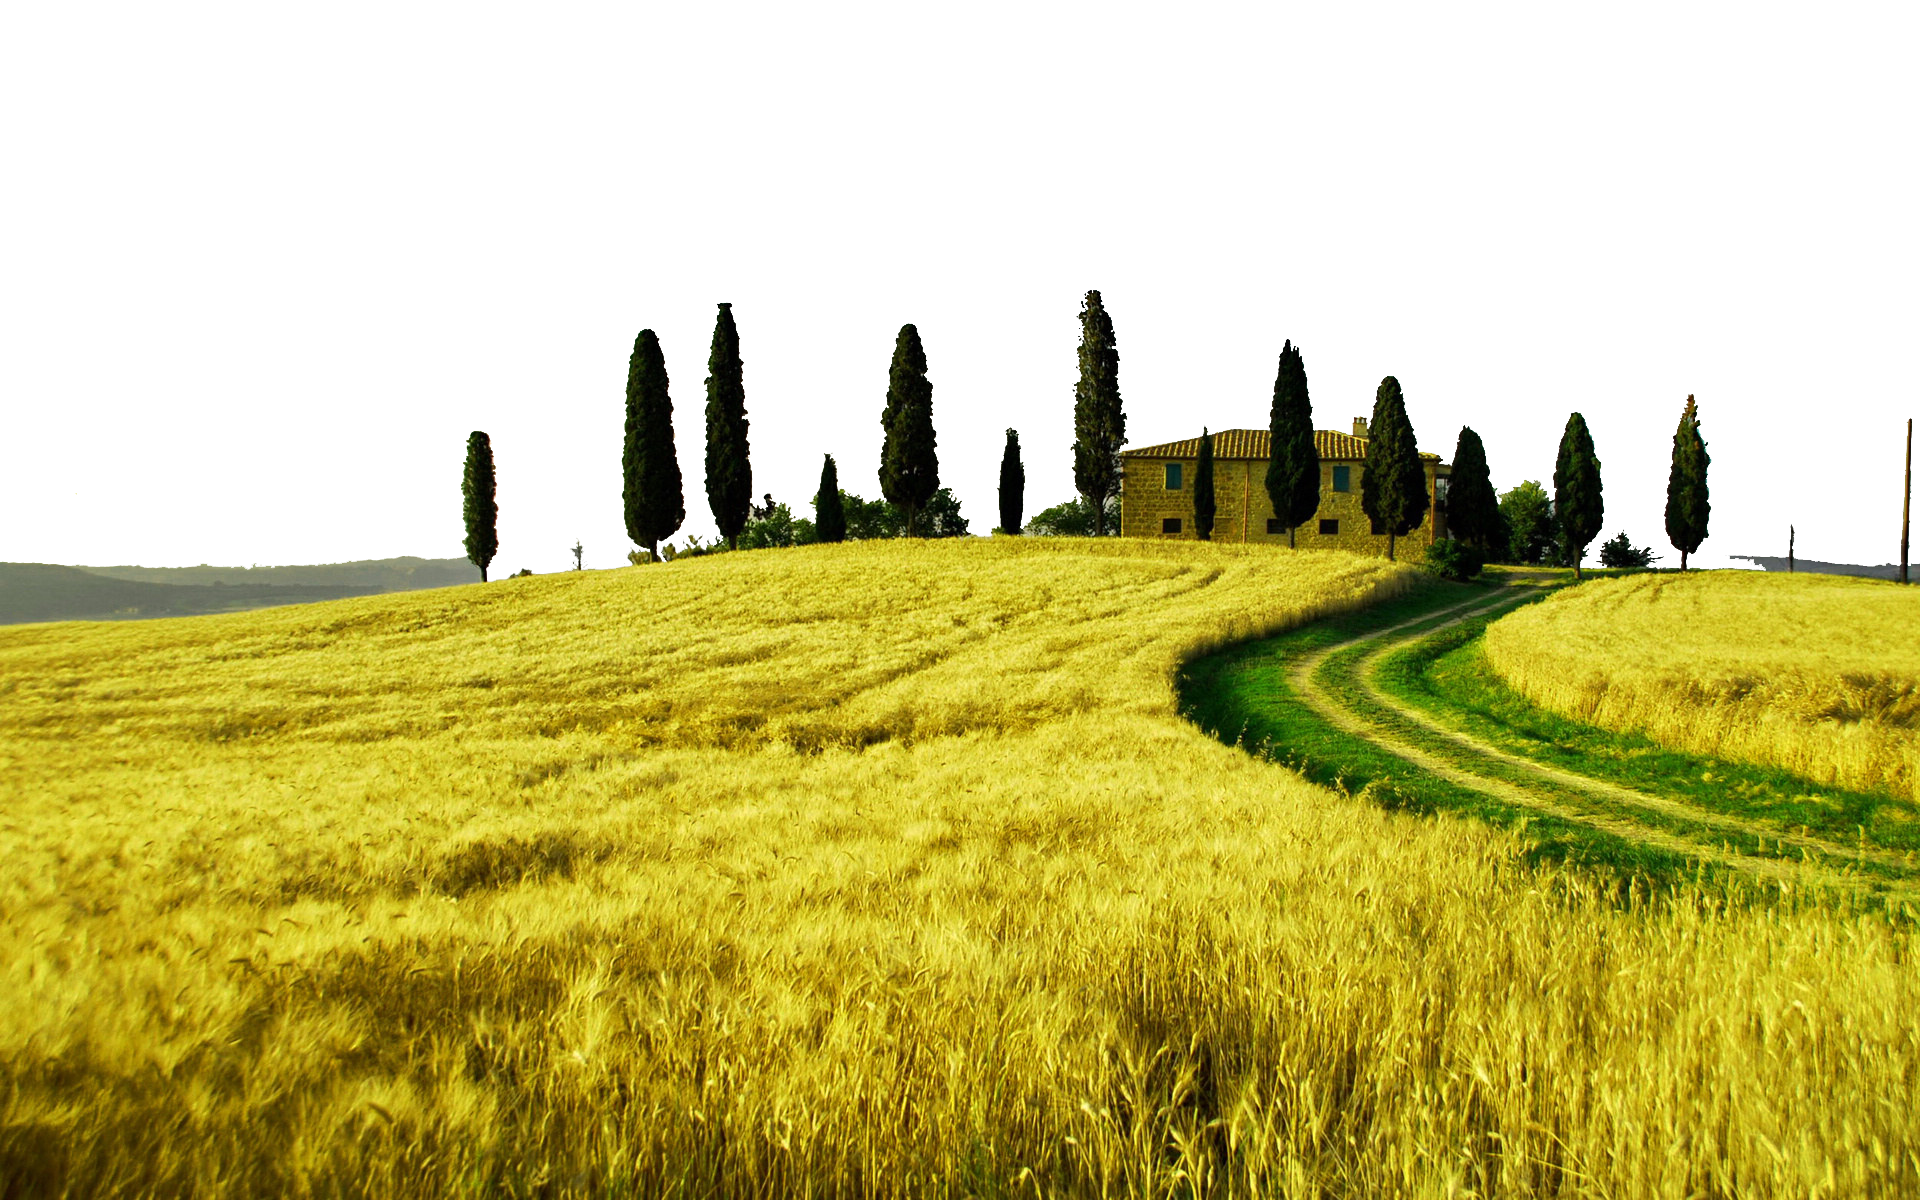 Png photography definition. Tuscany landscape high television